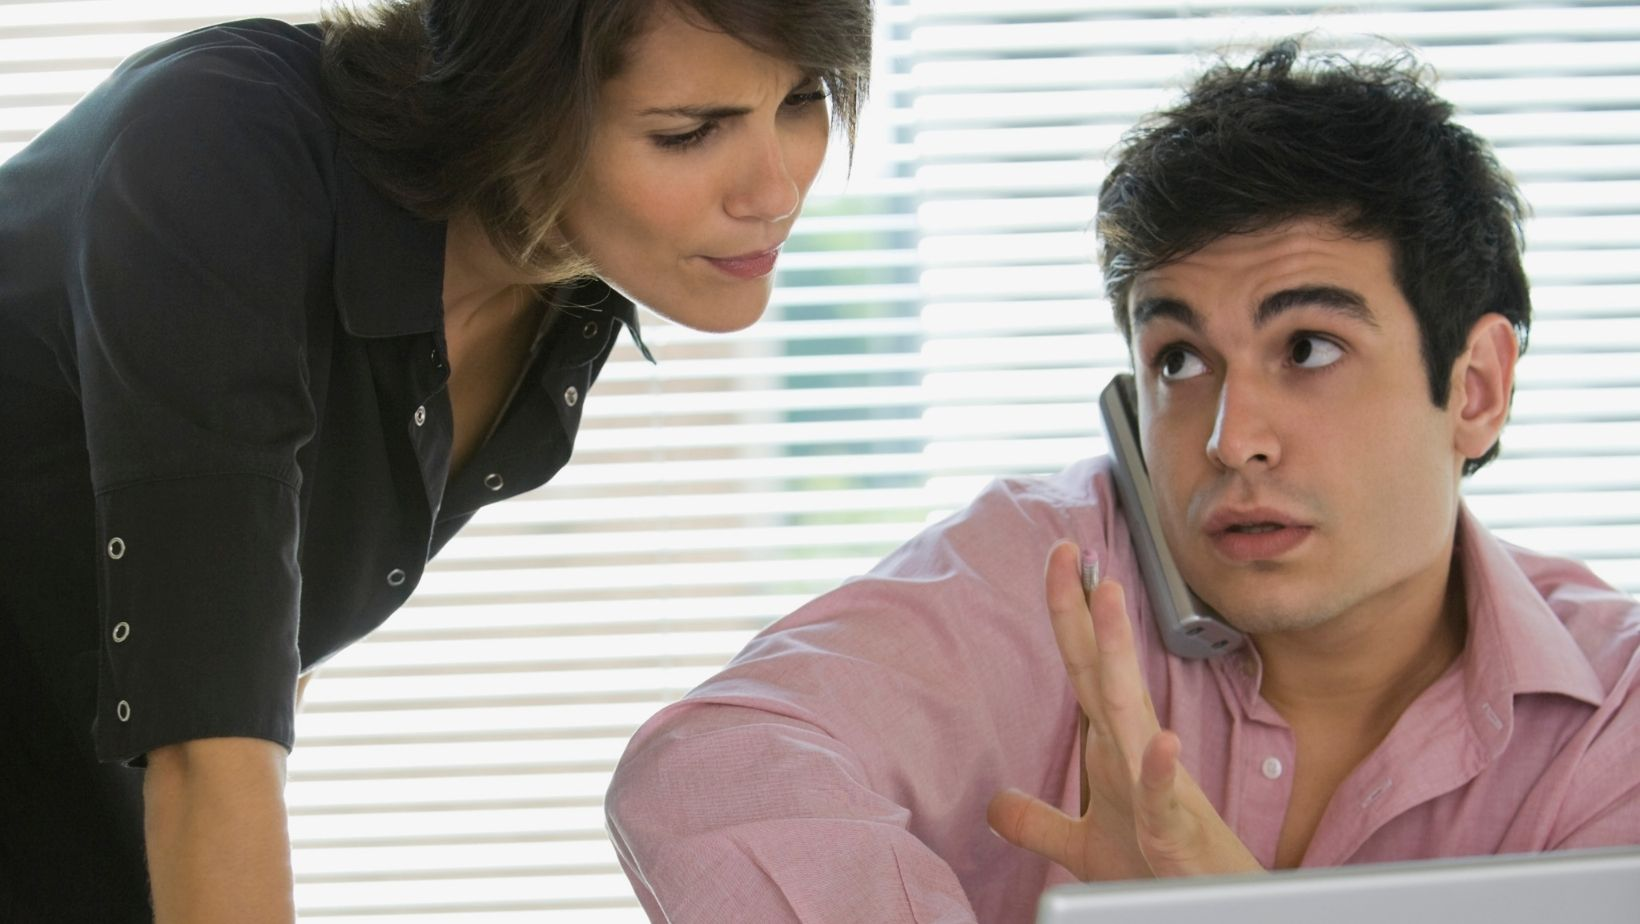 Woman interrupts busy coworker